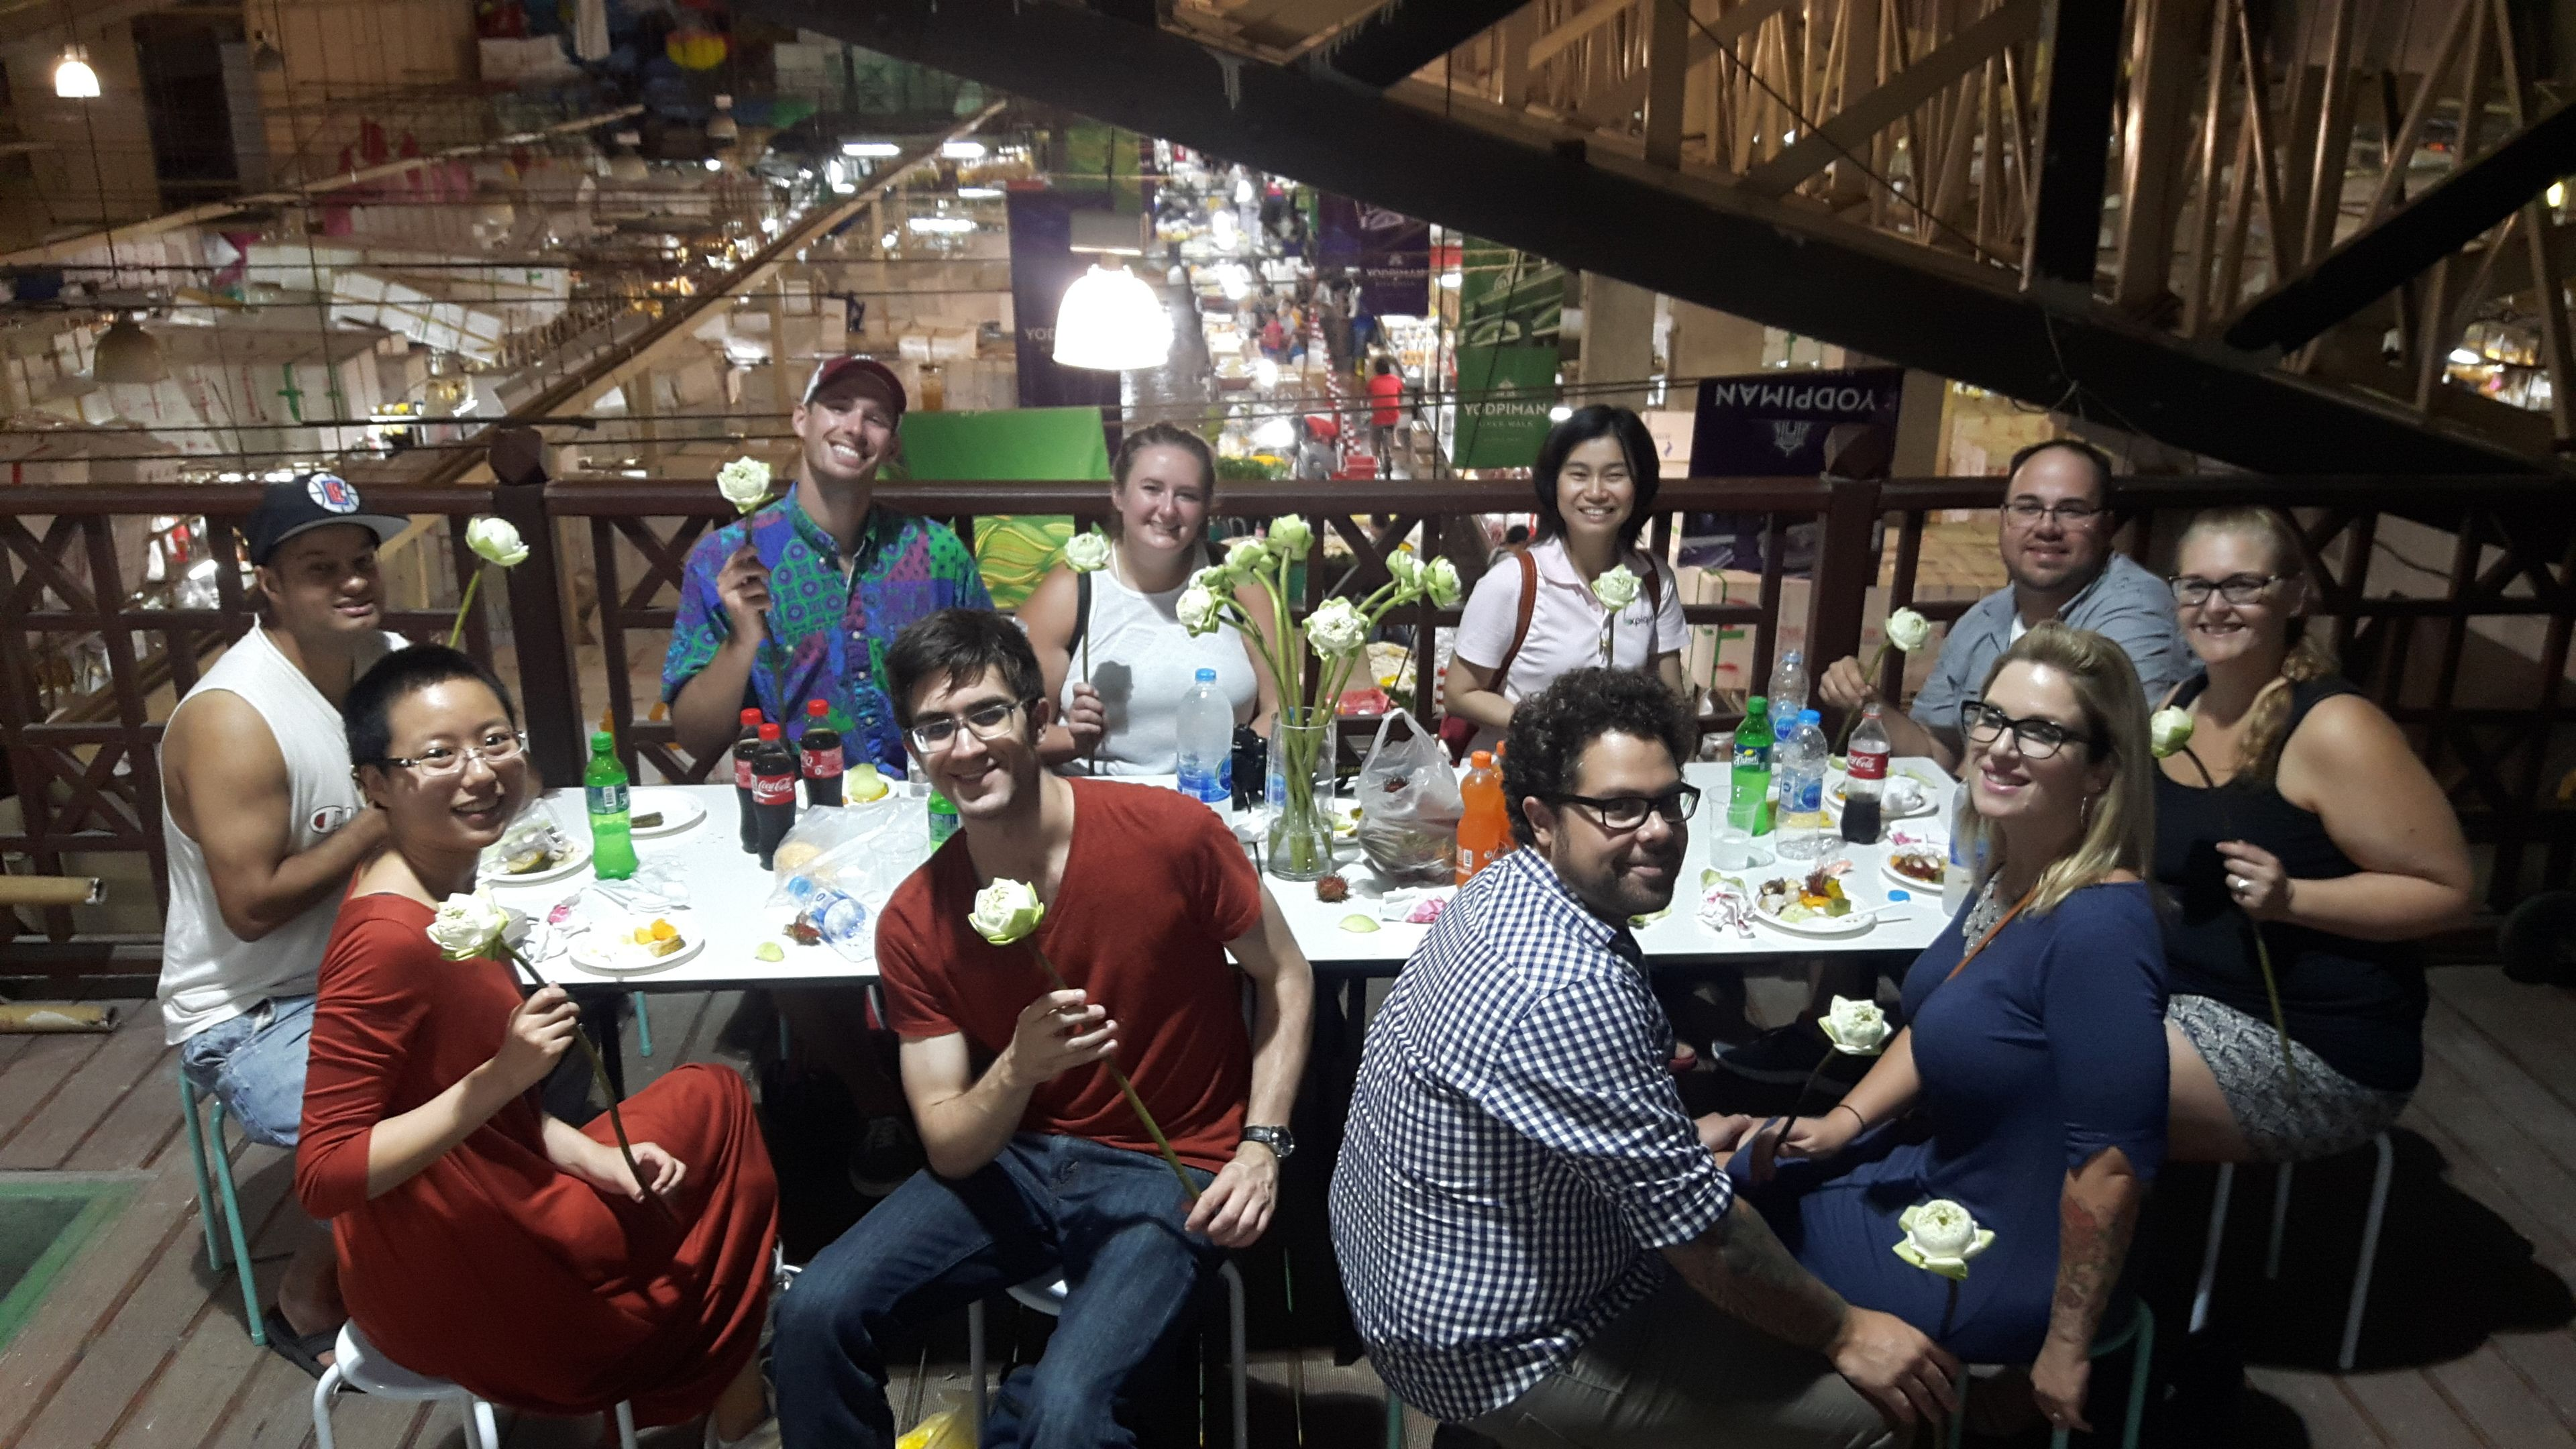 Tour group at a table holding white roses in Bangkok